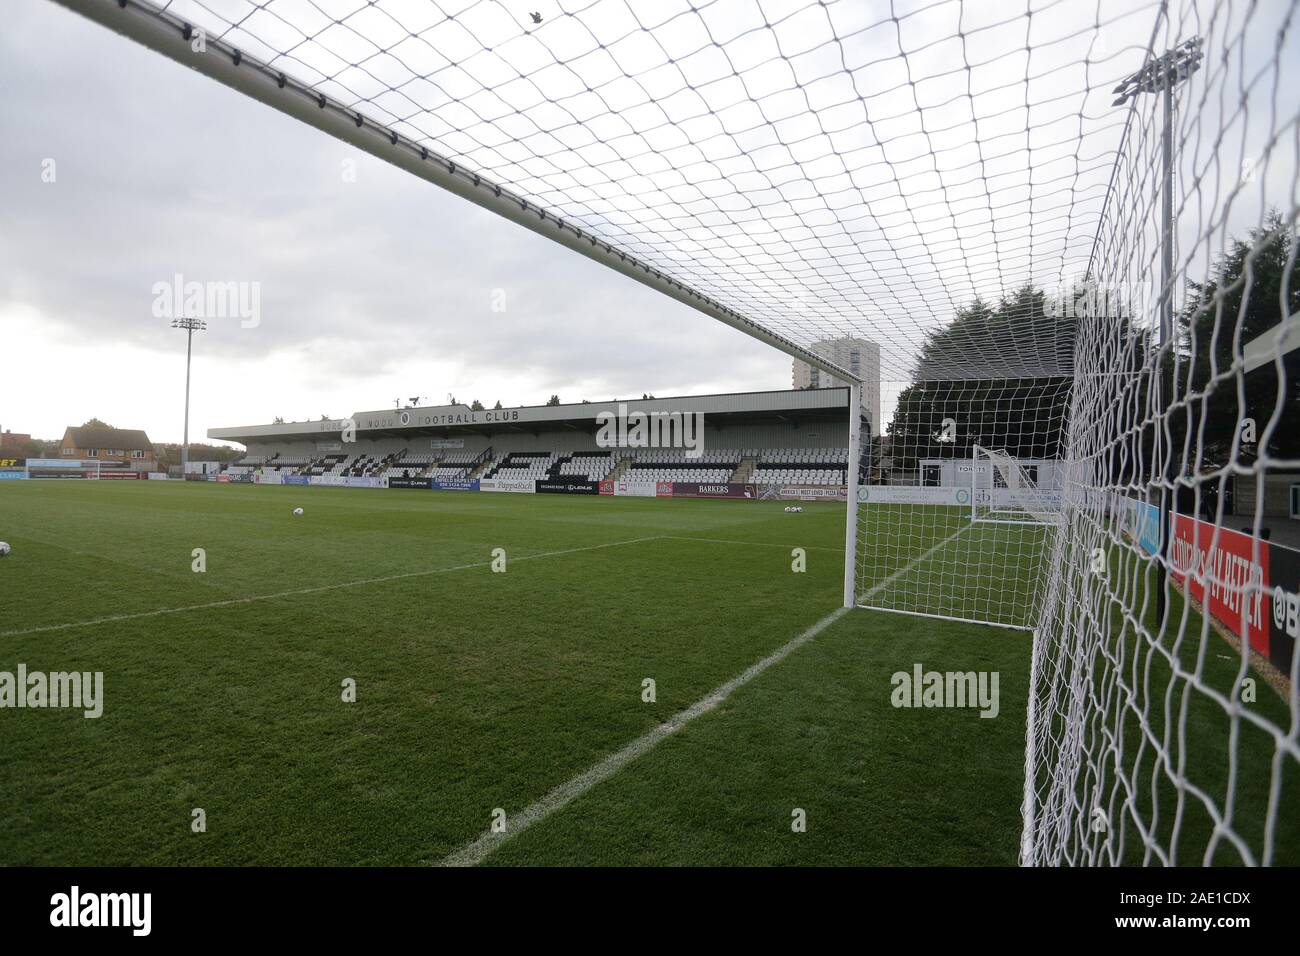 General view of the ground during Arsenal Women vs Bristol City Women, Barclays FA Women's Super League Football at Meadow Park on 1st December 2019 Stock Photo